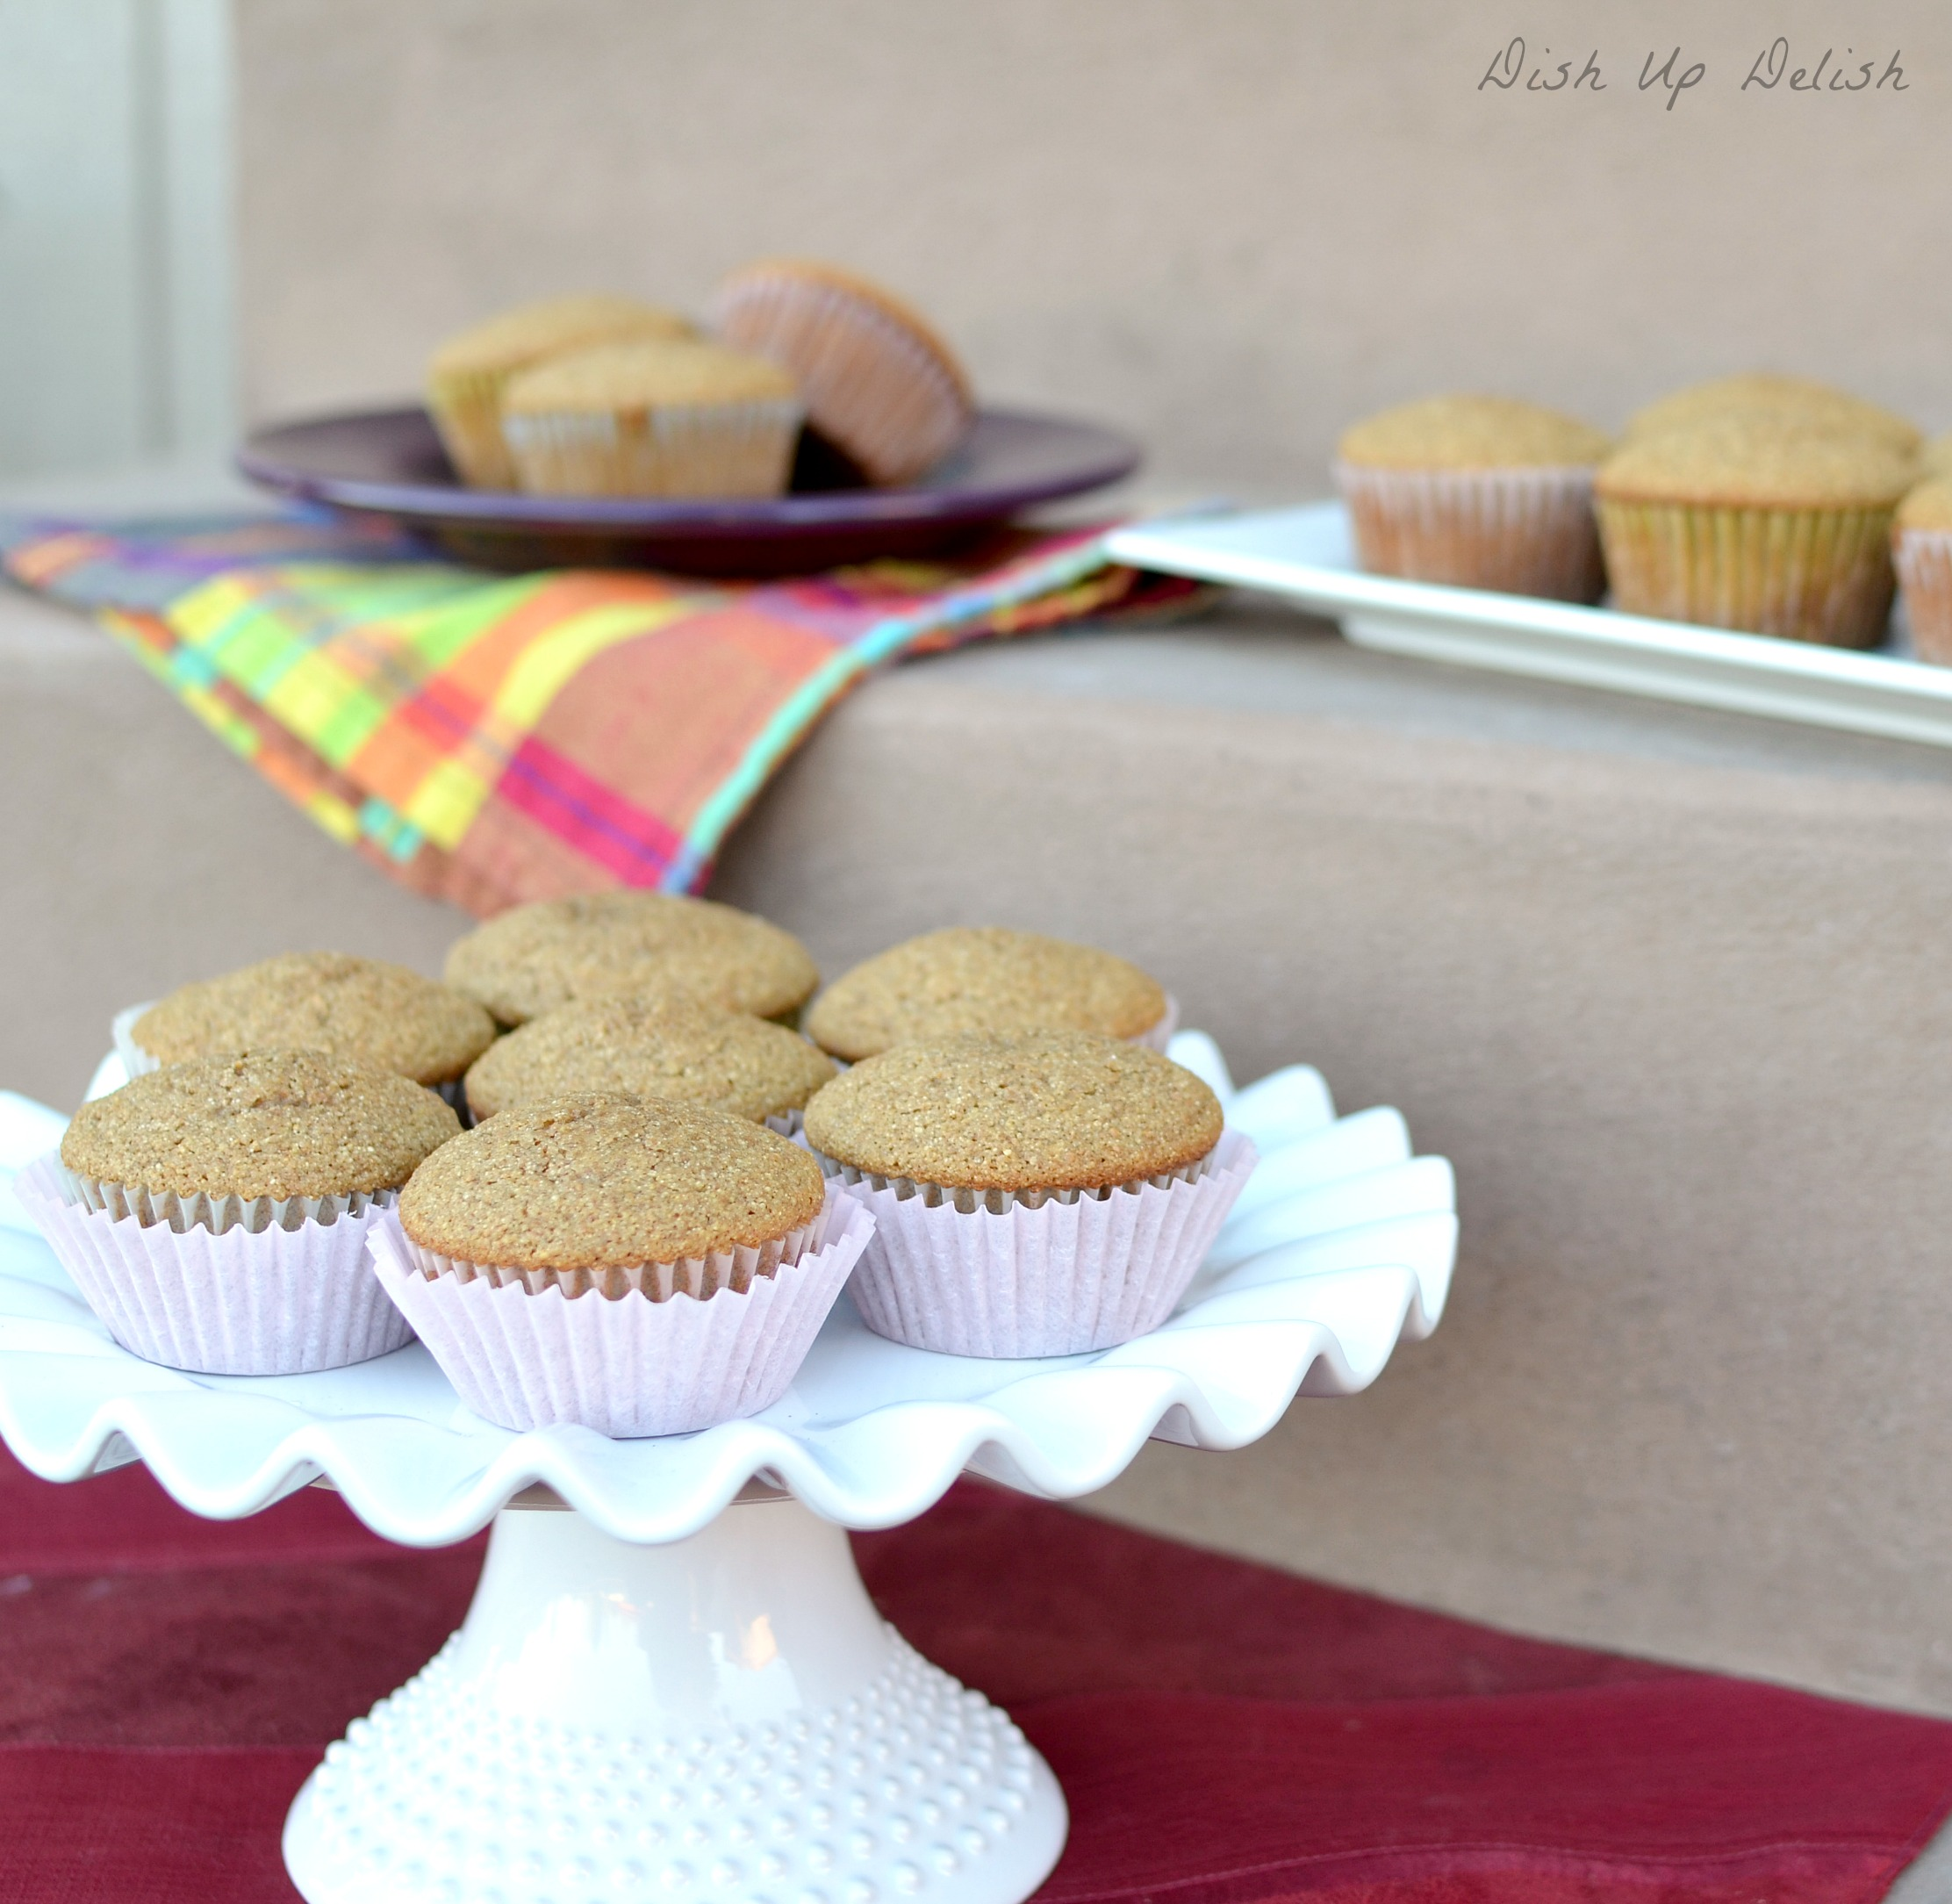 Brown Sugar and Whole Wheat Muffins from Dish Up Delish